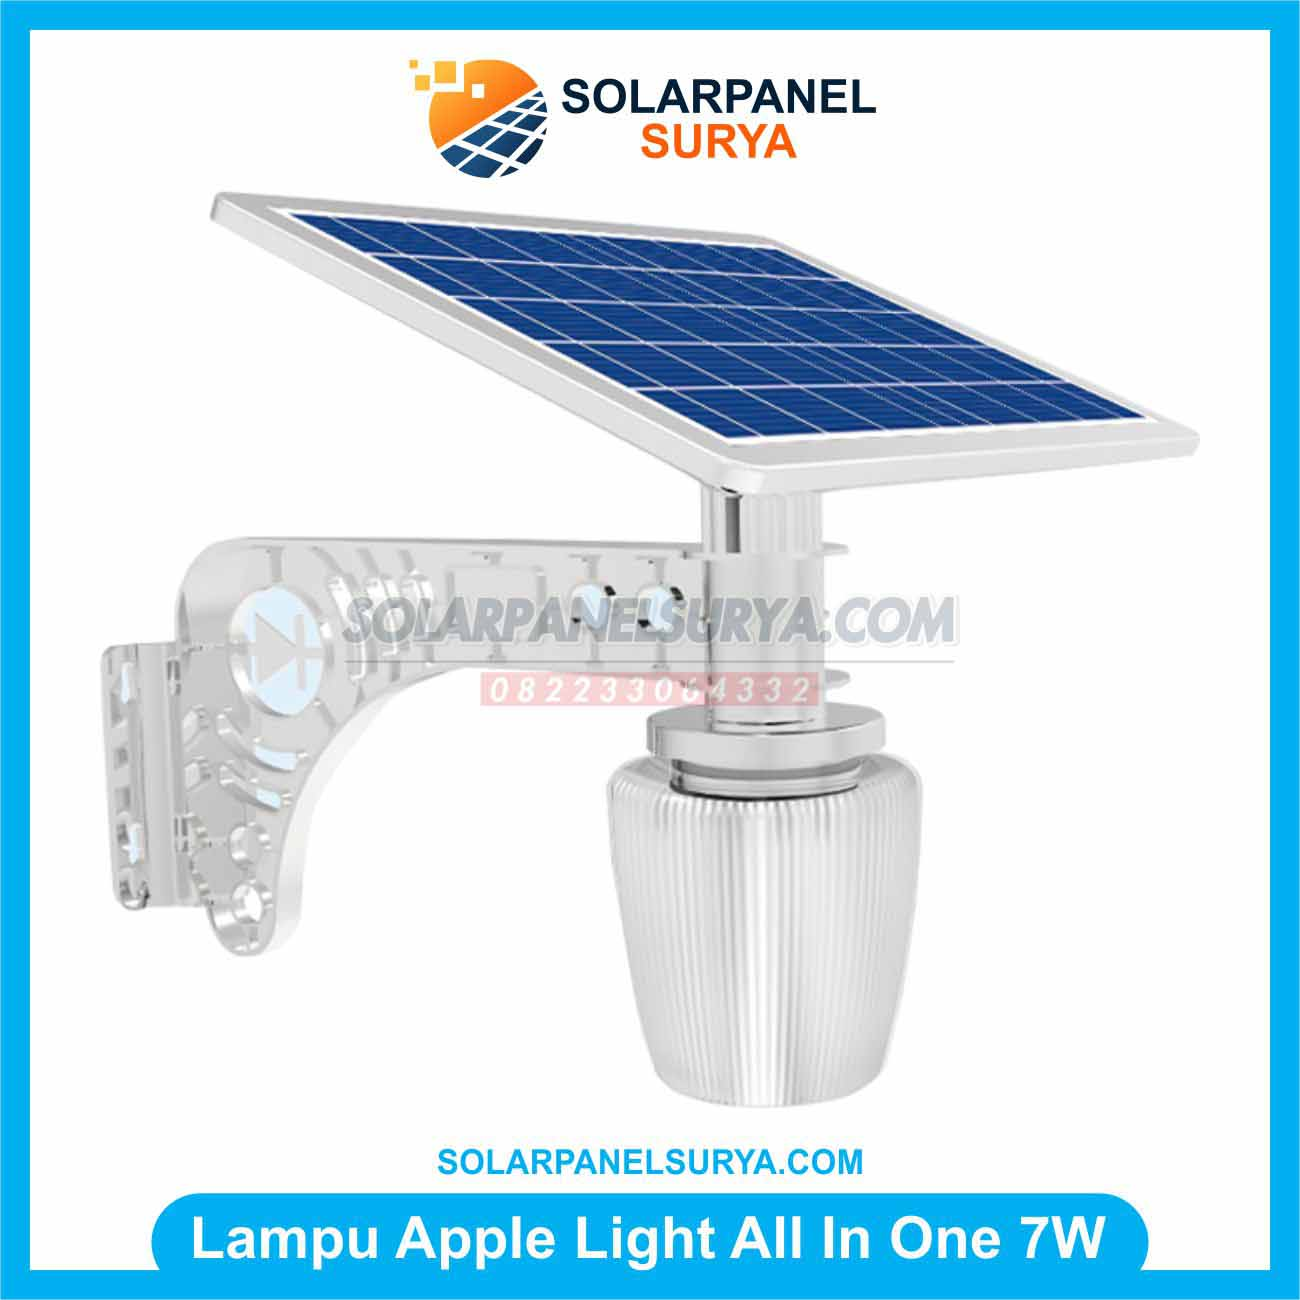 Jual Lampu Taman Tenaga Surya All In One Apple Light 7 Watt